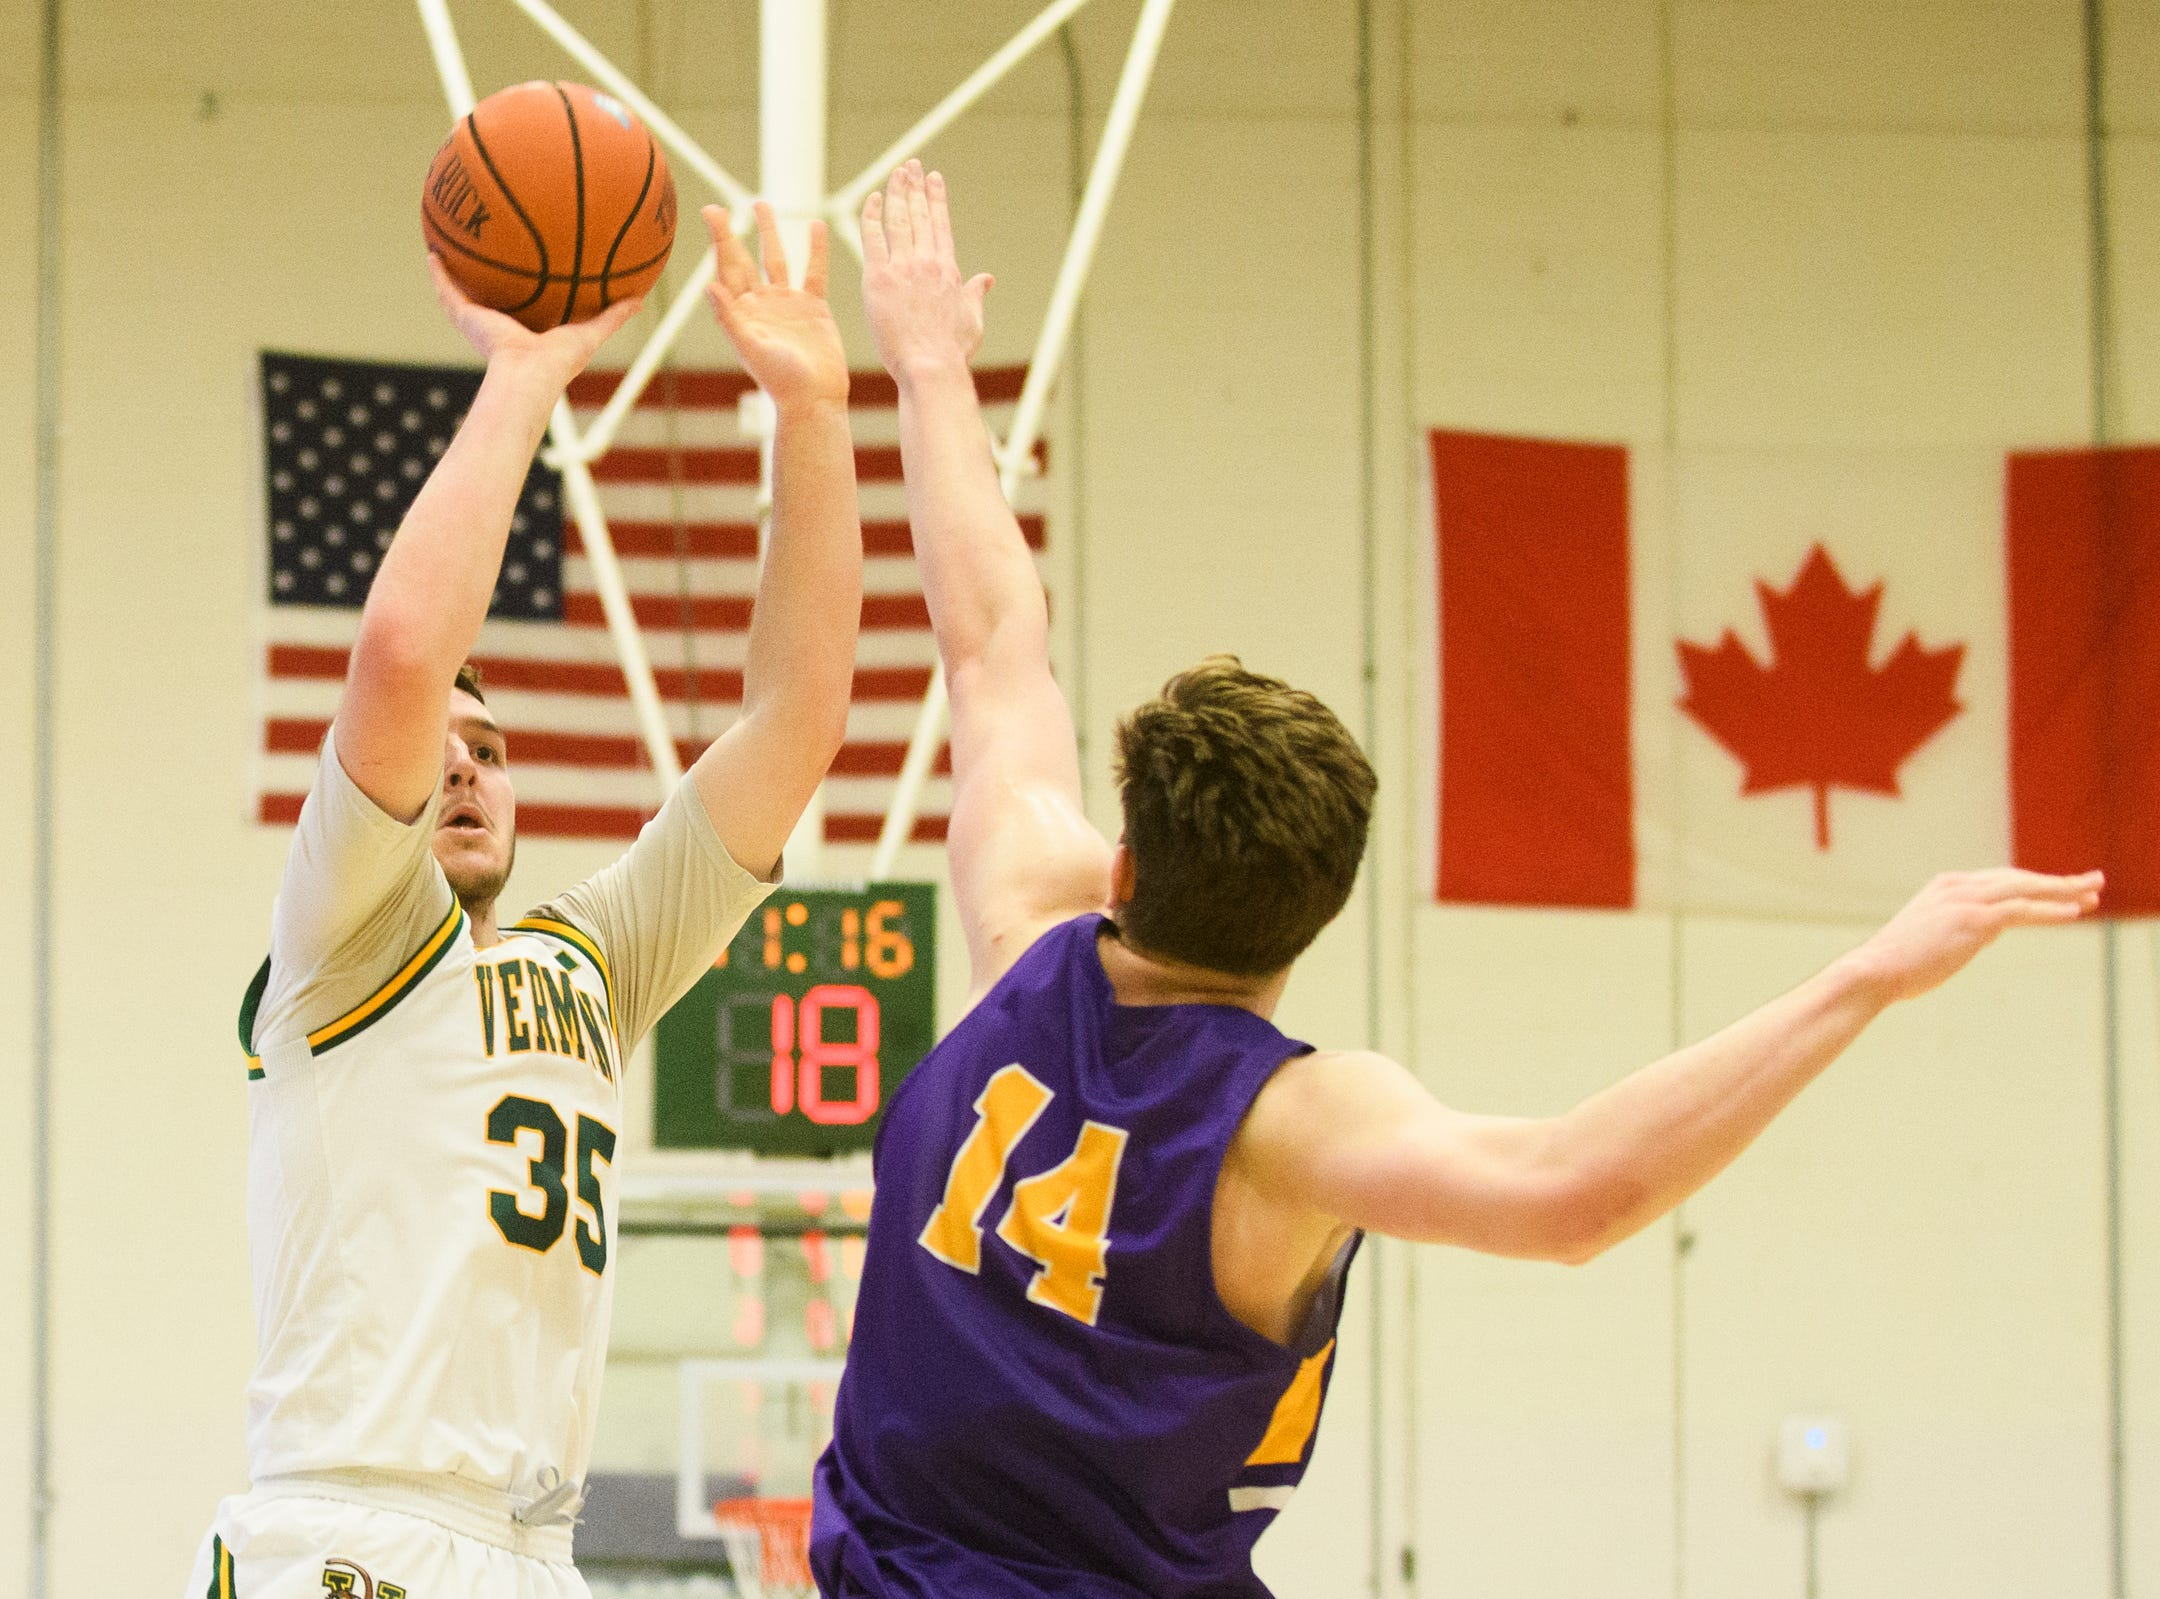 Vermont forward Ryan Davis (35) shoots the ball over Albany's Adam Lulka (14) during the men's basketball game between the Albany Great Danes and the Vermont Catamounts at Patrick Gym on Saturday February 9, 2019 in Burlington, Vermont.